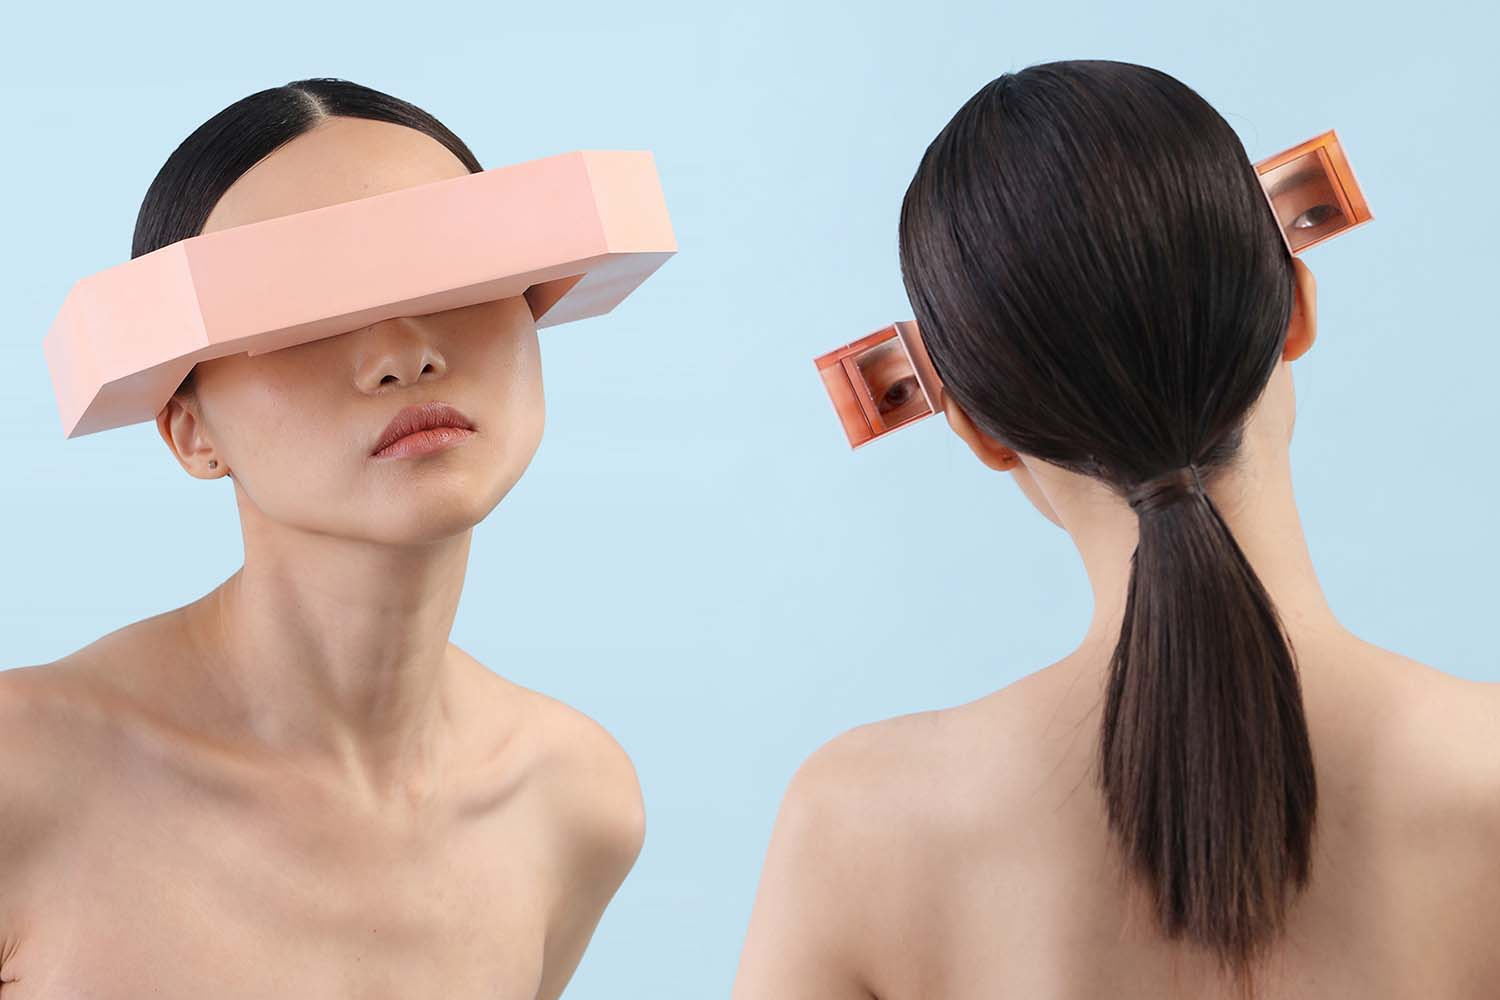 View Change Glasses by Luo Shuzhen